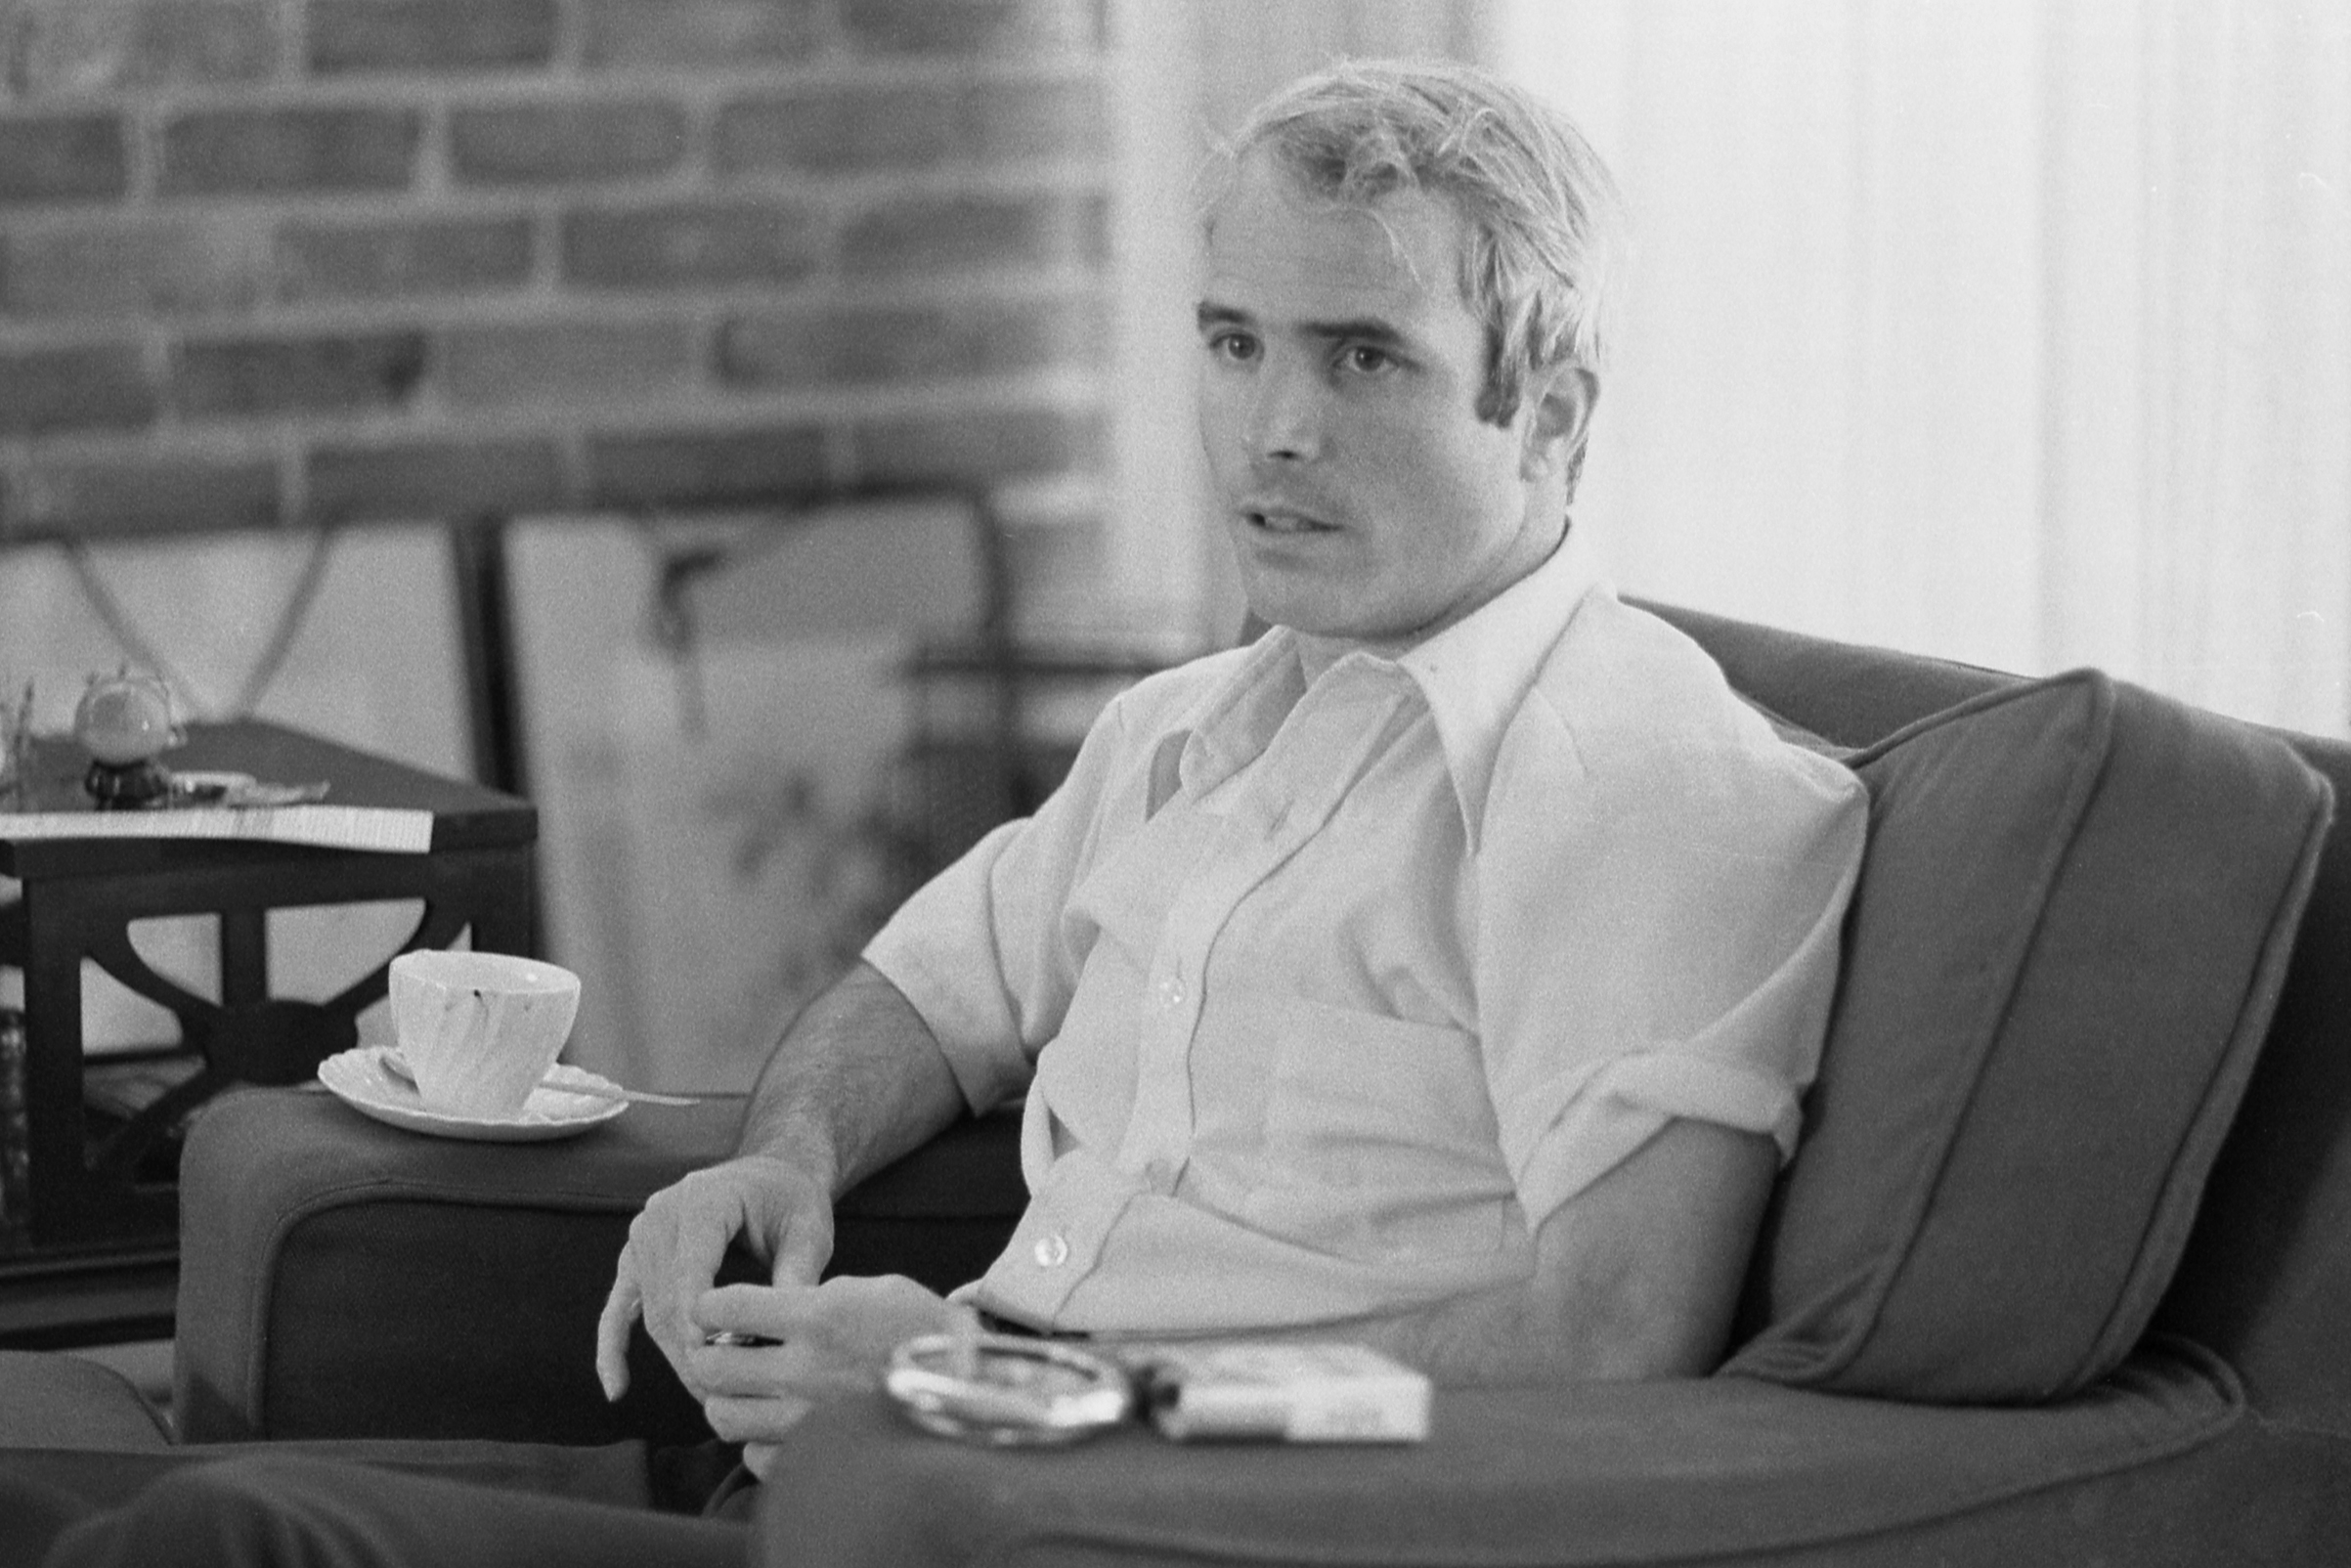 American soldier and Vietnam prisoner of war John McCain sits on a sofa during an interview, about a month after he had been released and returned from Vietnam, on April 24, 1973.